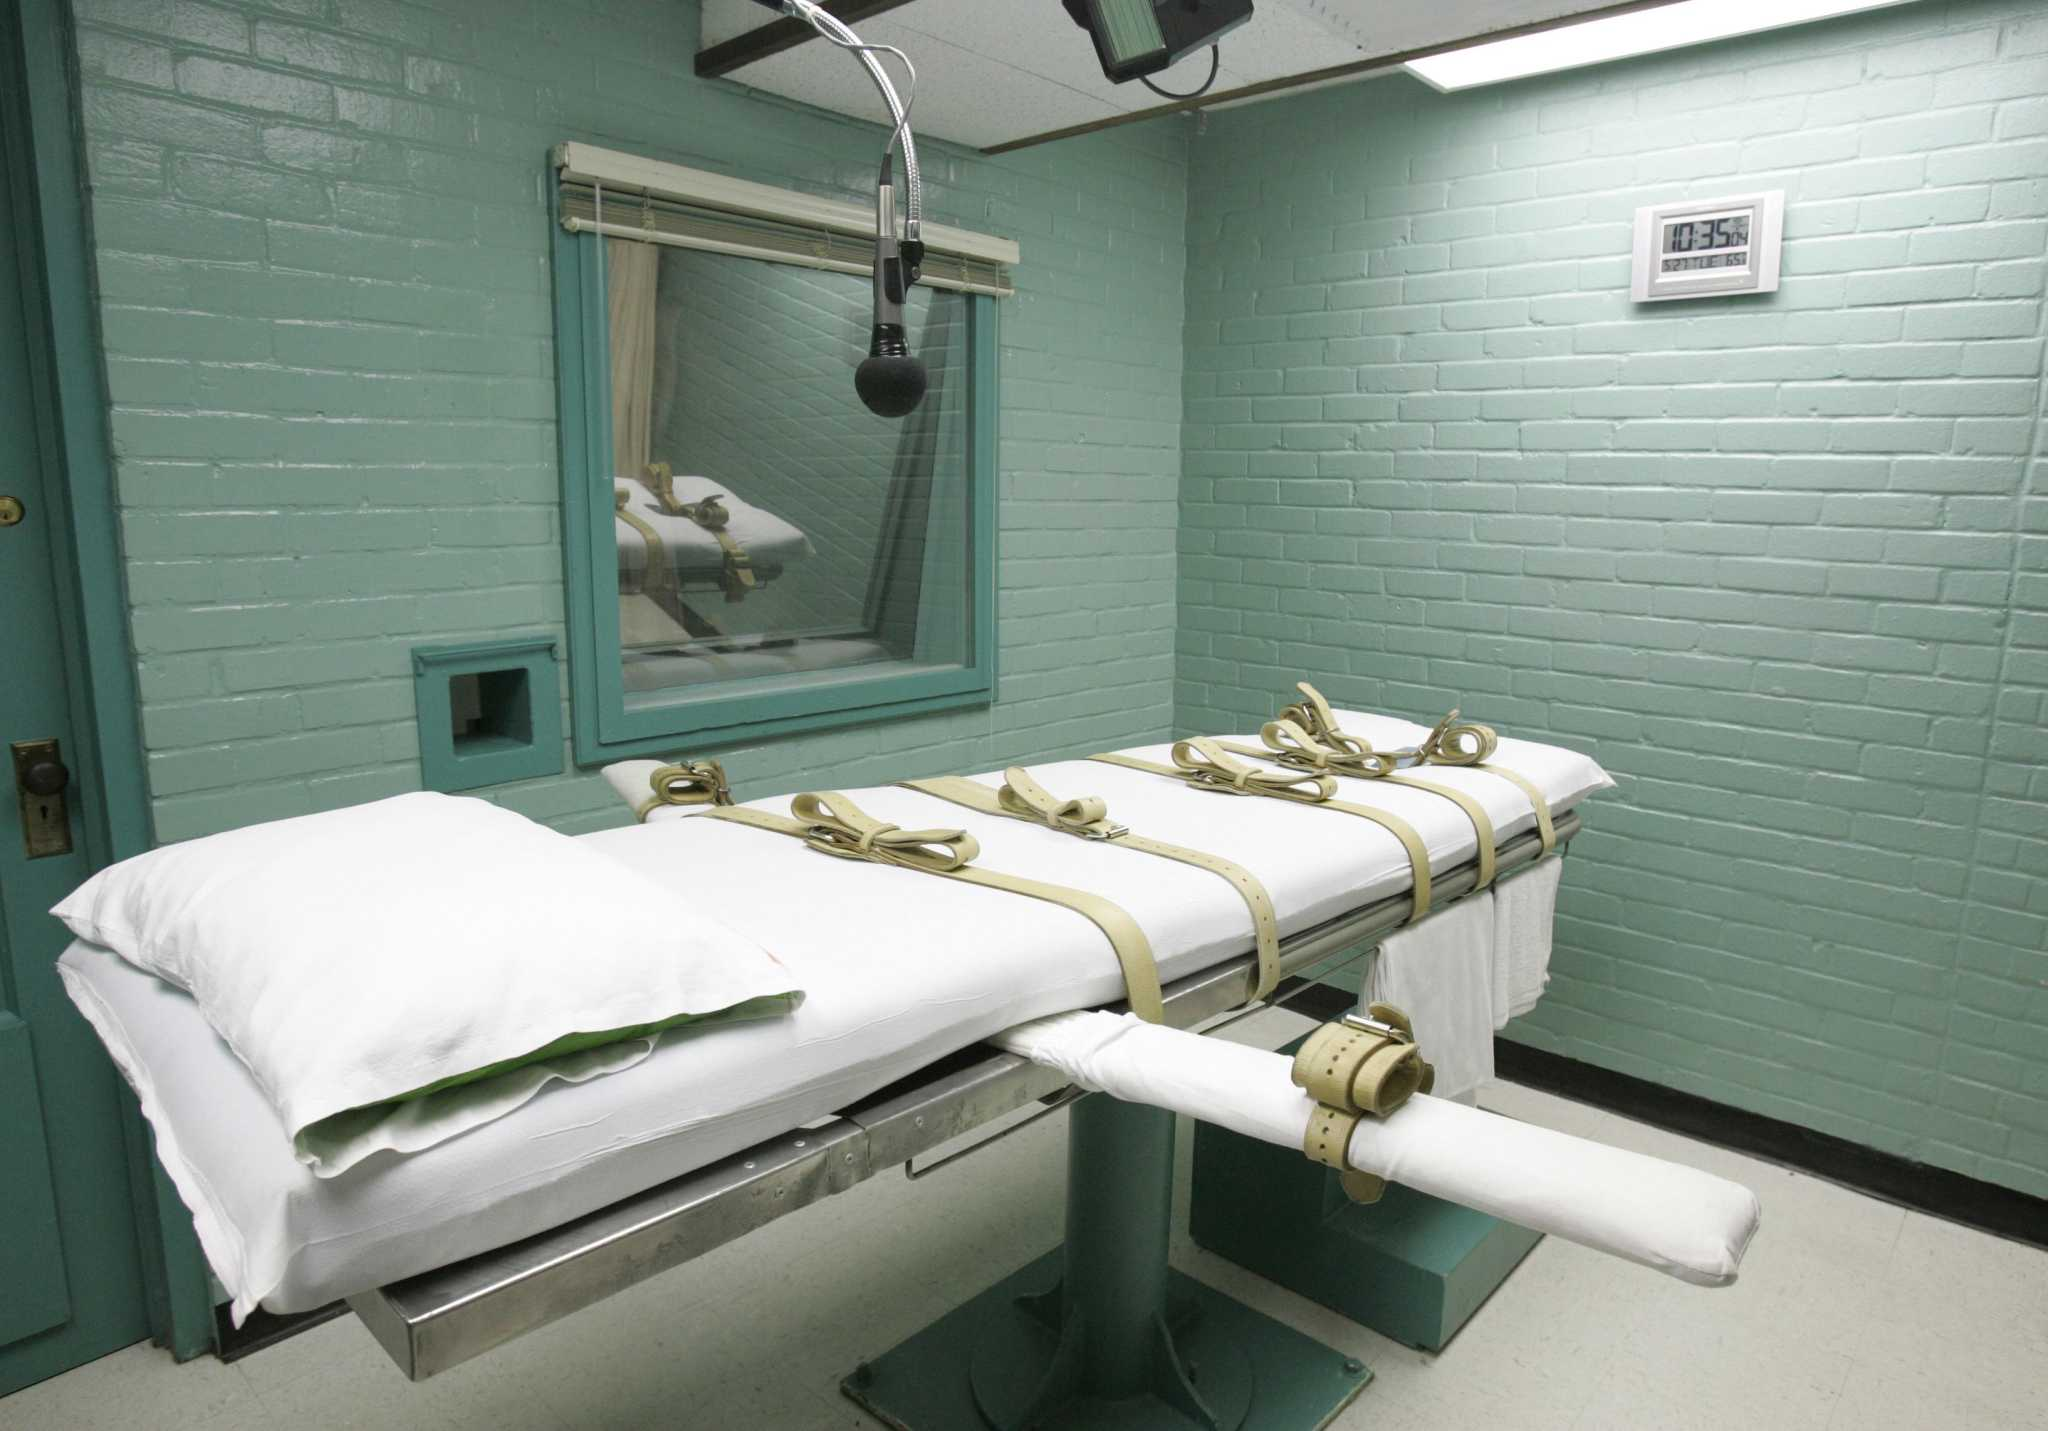 Texas sent 7 people to death row in 2018. All of them were people of color.